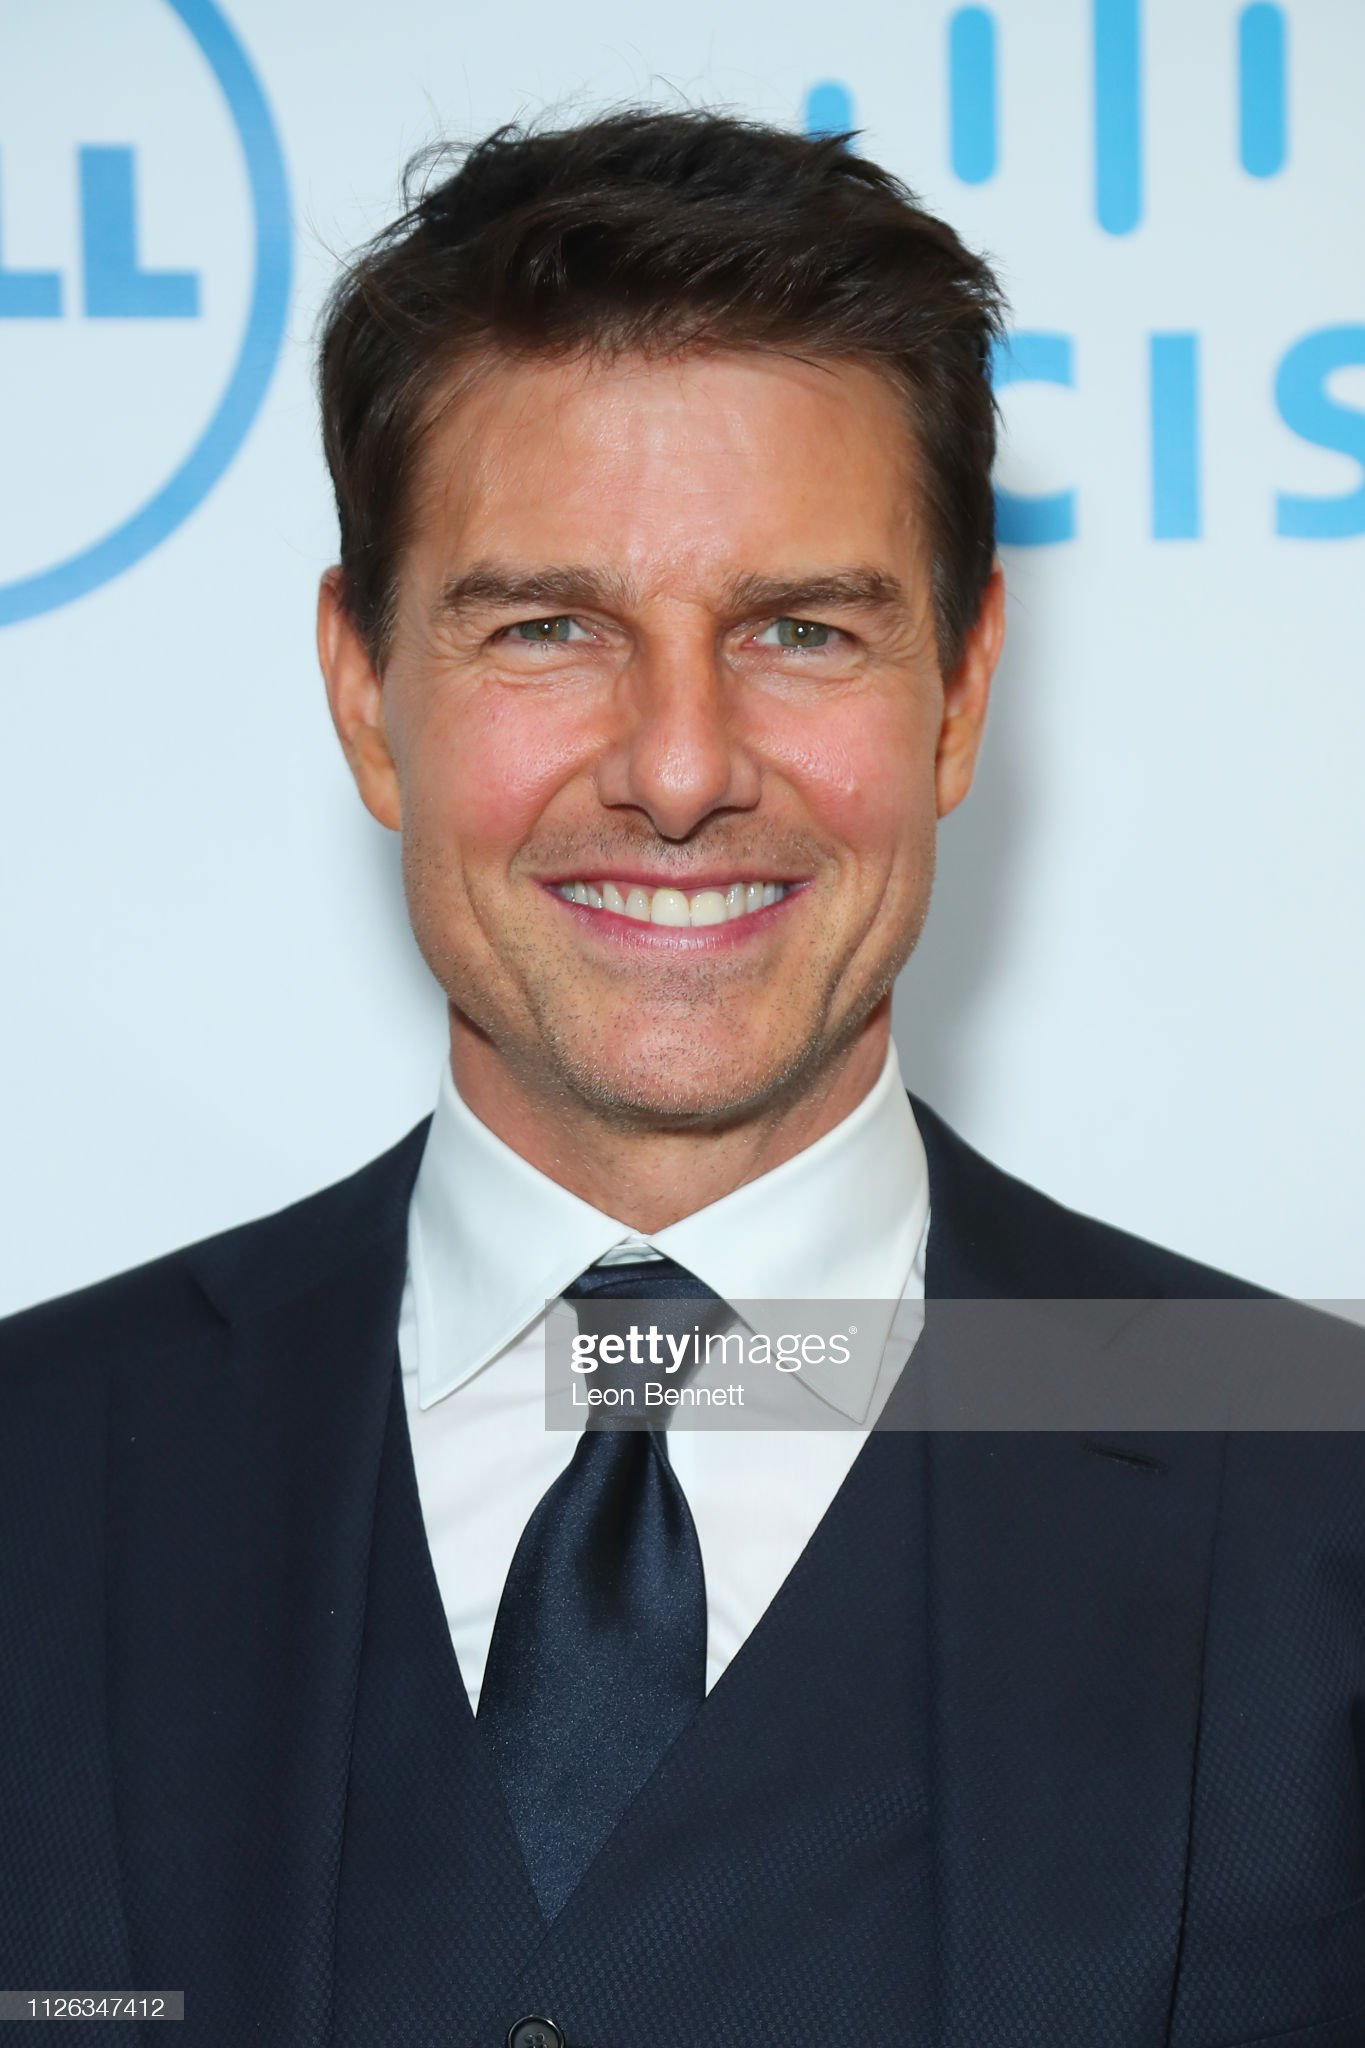 Ojos verdes - Famosas y famosos con los ojos de color VERDE Tom-cruise-attends-10th-annual-lumiere-awards-at-warner-bros-studios-picture-id1126347412?s=2048x2048